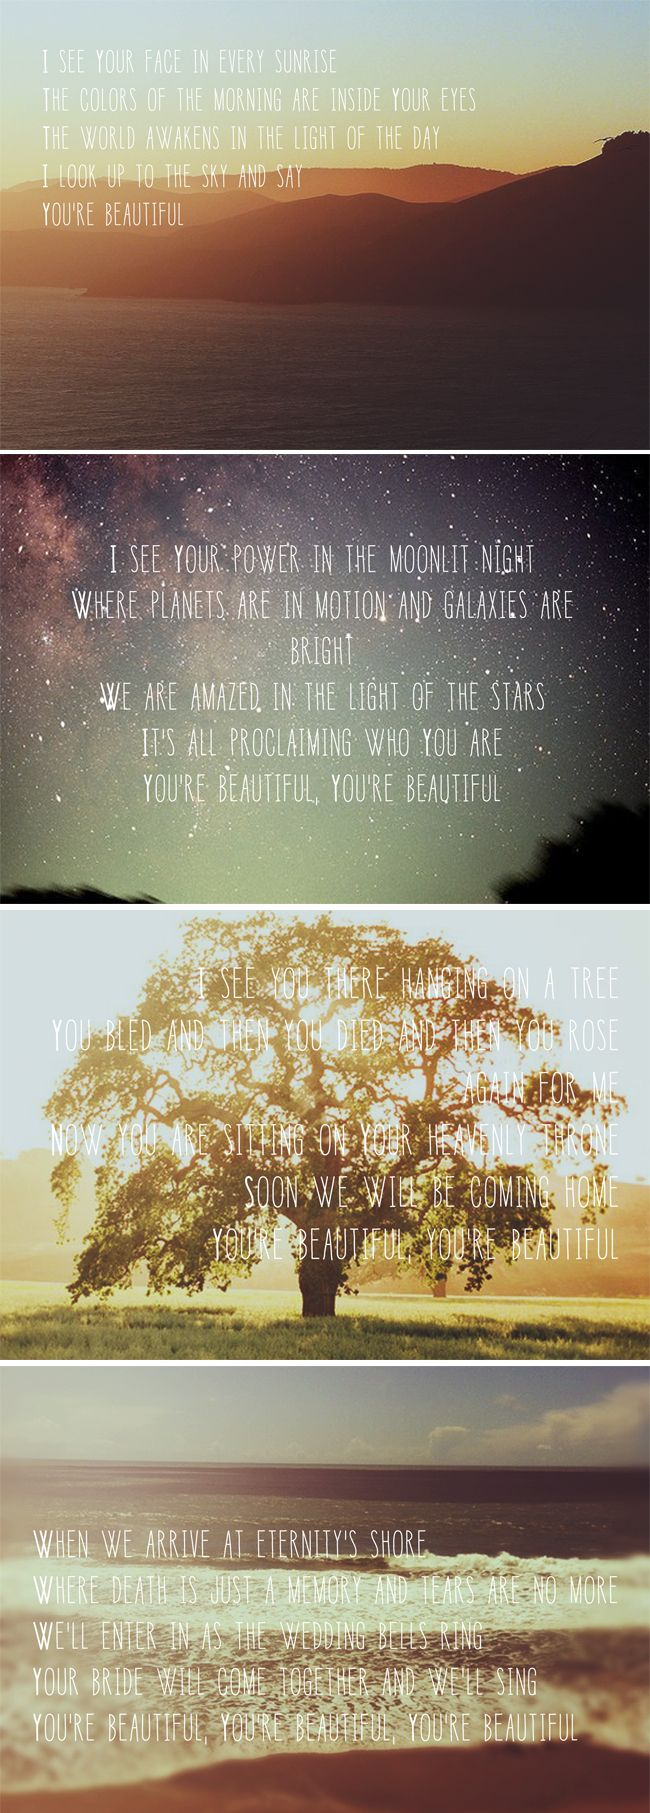 """""""You're Beautiful"""" - Phil Wickham Beautiful song! ♥ The last verse is my favorite one!"""